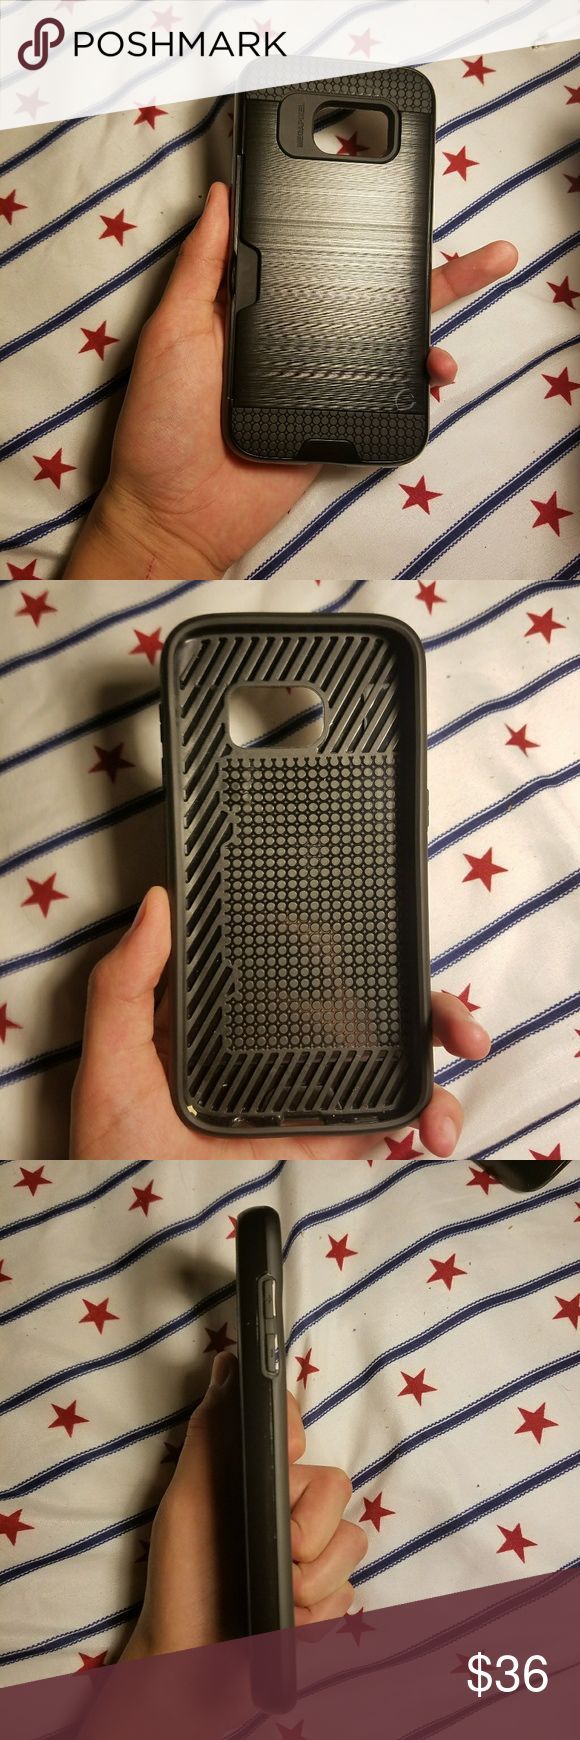 Samsung galaxy s7 phone case In very good shape Accessories Phone Cases